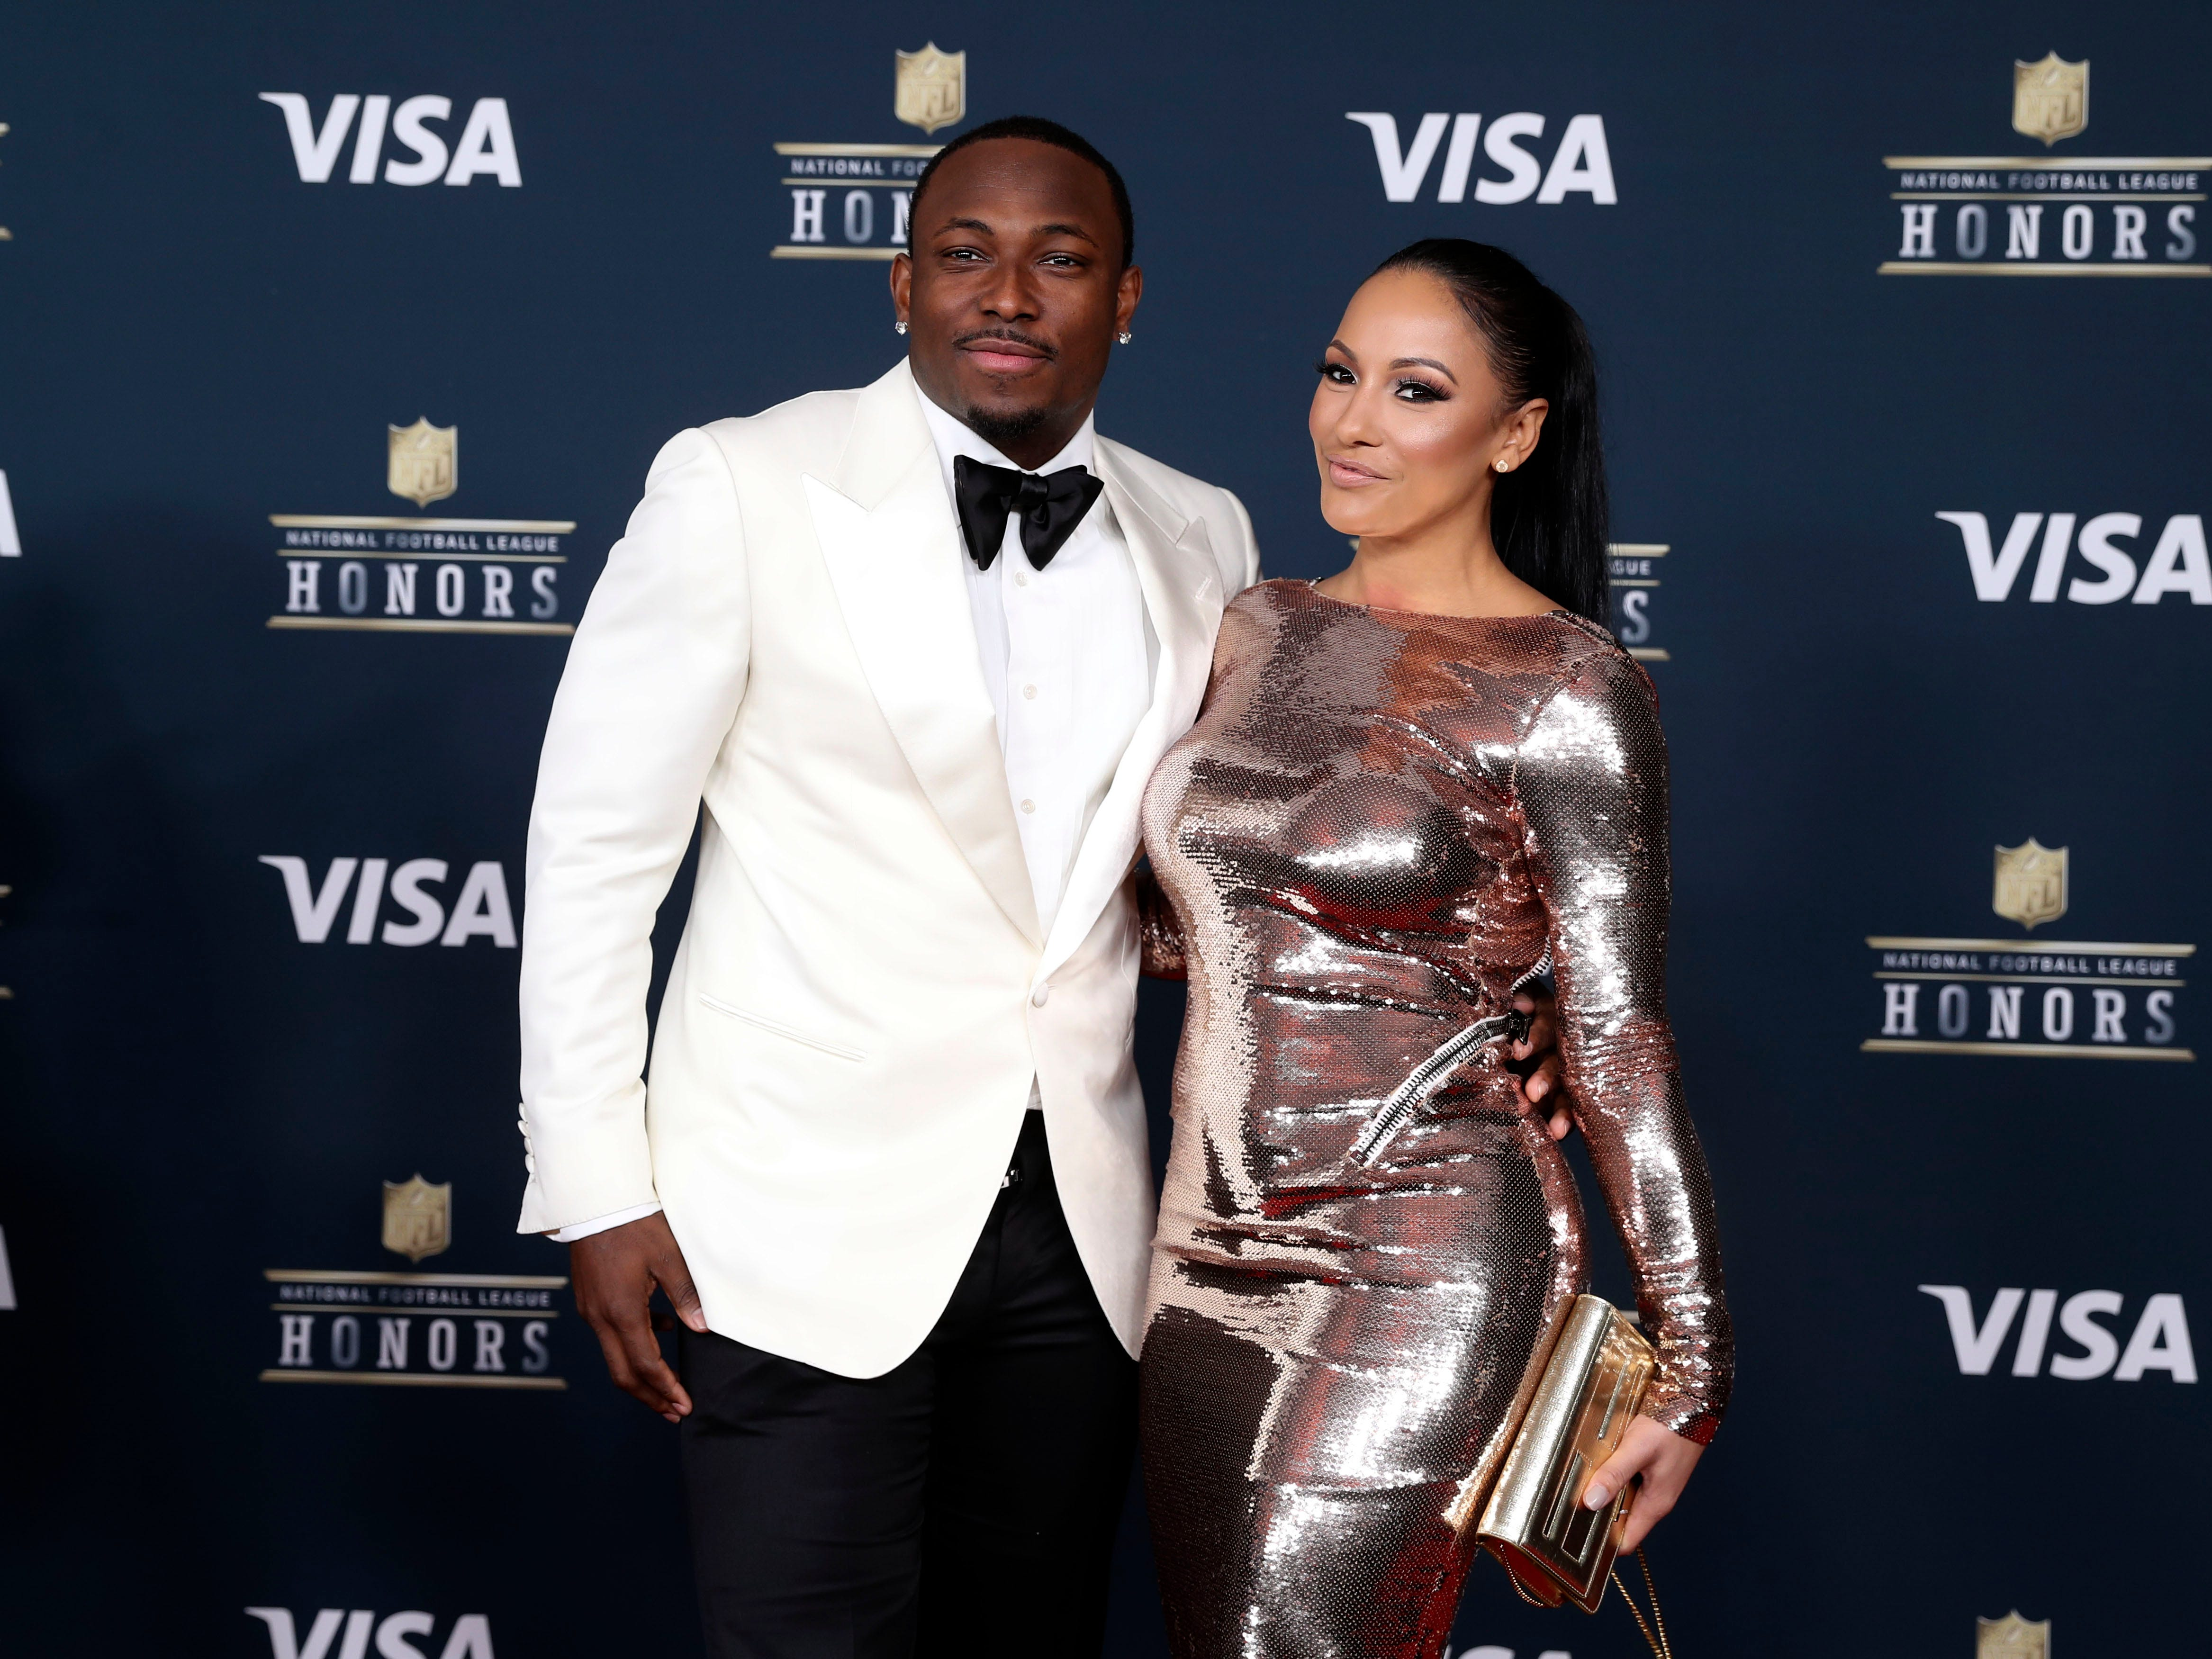 Buffalo Bills running back LeSean McCoy and fashion designer Delicia Cordon on the red carpet prior to the 6th Annual NFL Honors at Wortham Theater in 2017.